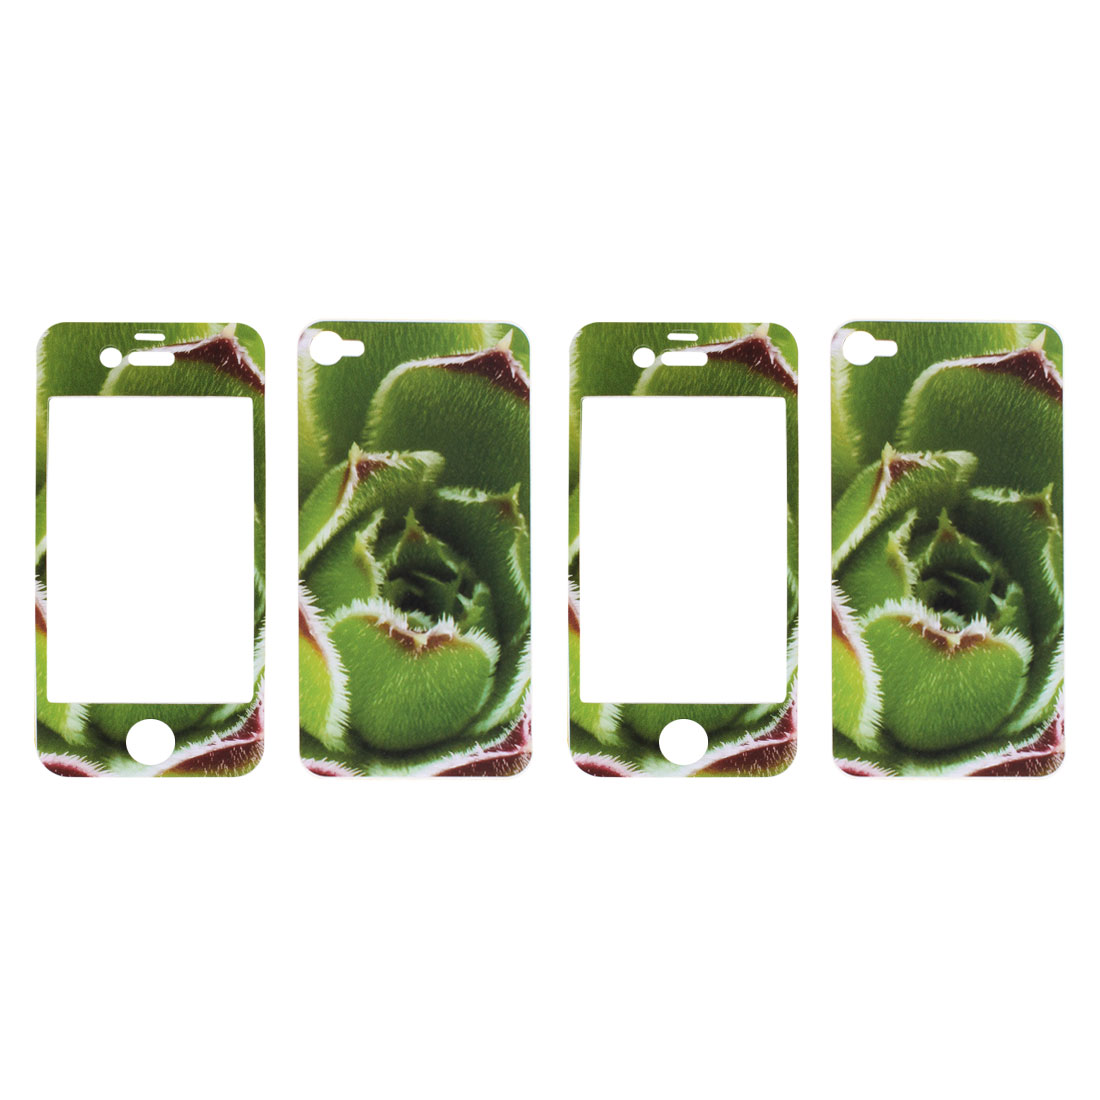 2 Pcs Green Flower Vinyl Front Back Sticker Cover Protector for iPhone 4 4G 4S 4GS